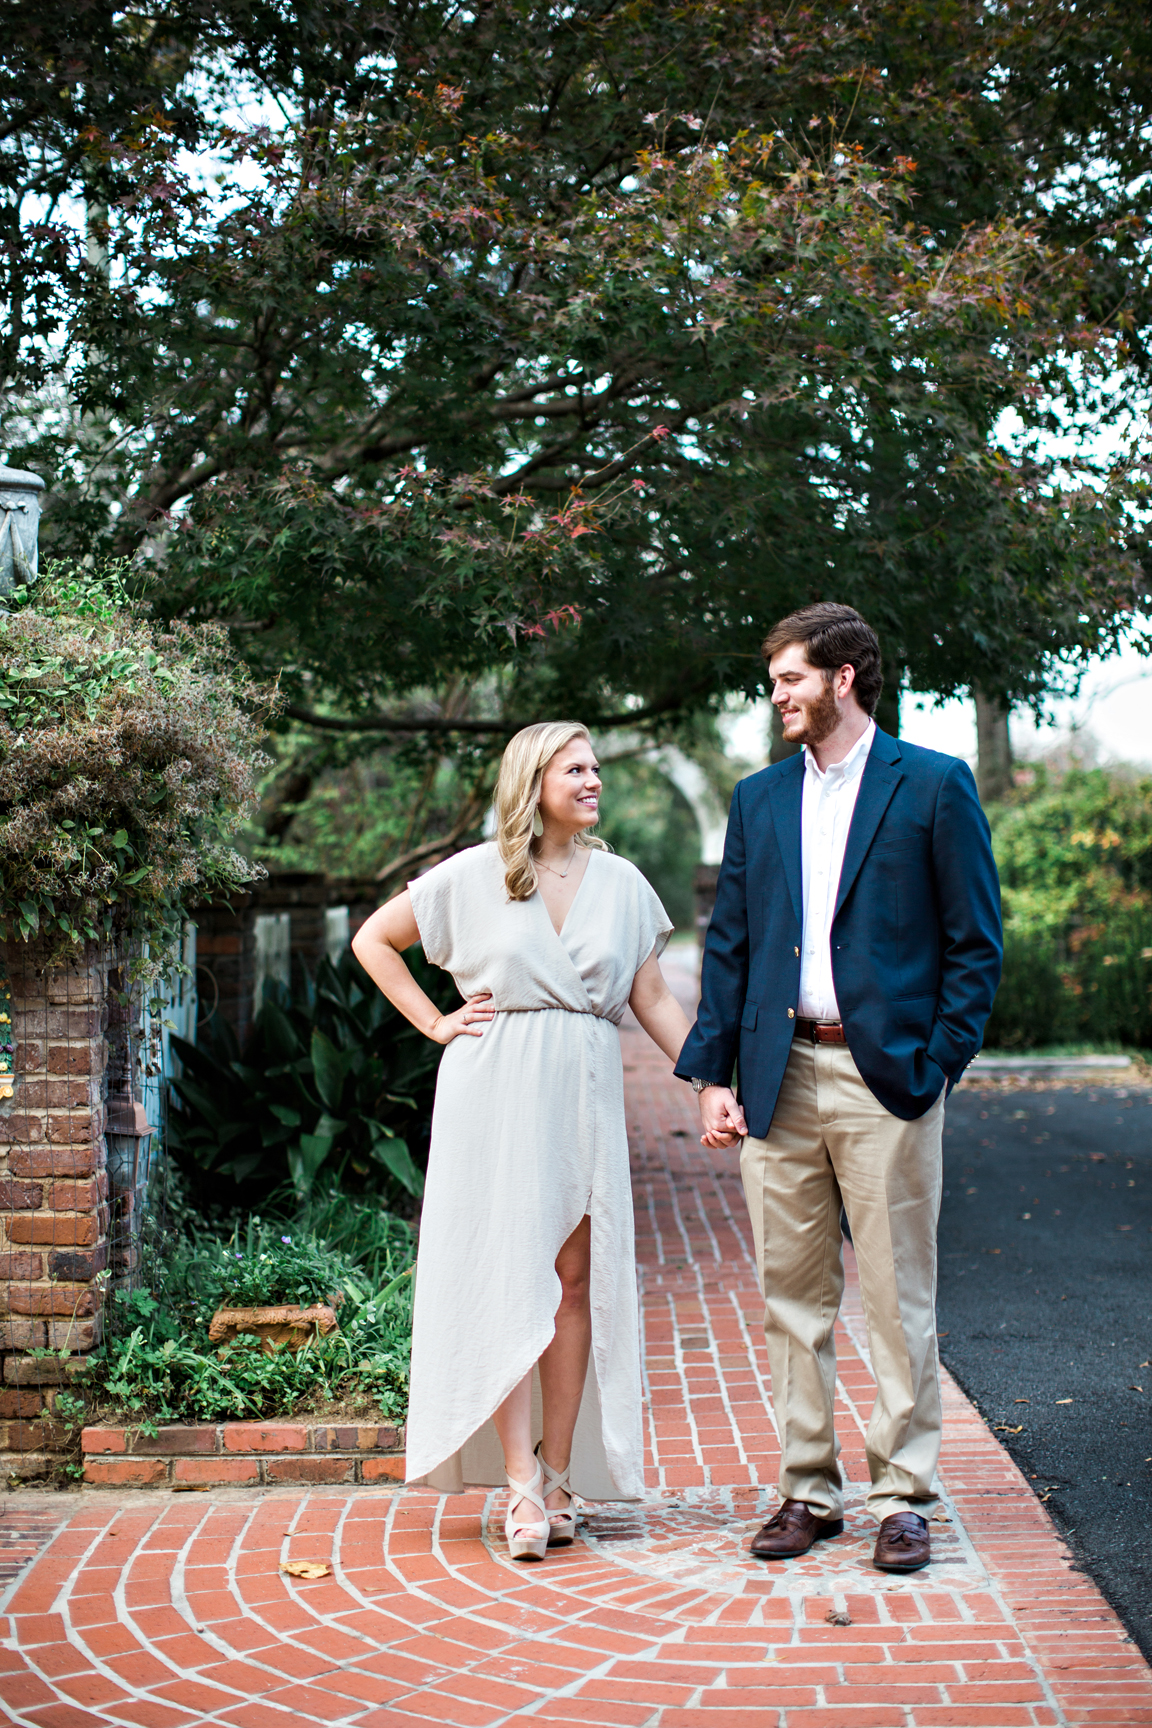 Alabama-Wedding-Photographers-Nick-Drollette-Amanda-Daniel-108.jpg